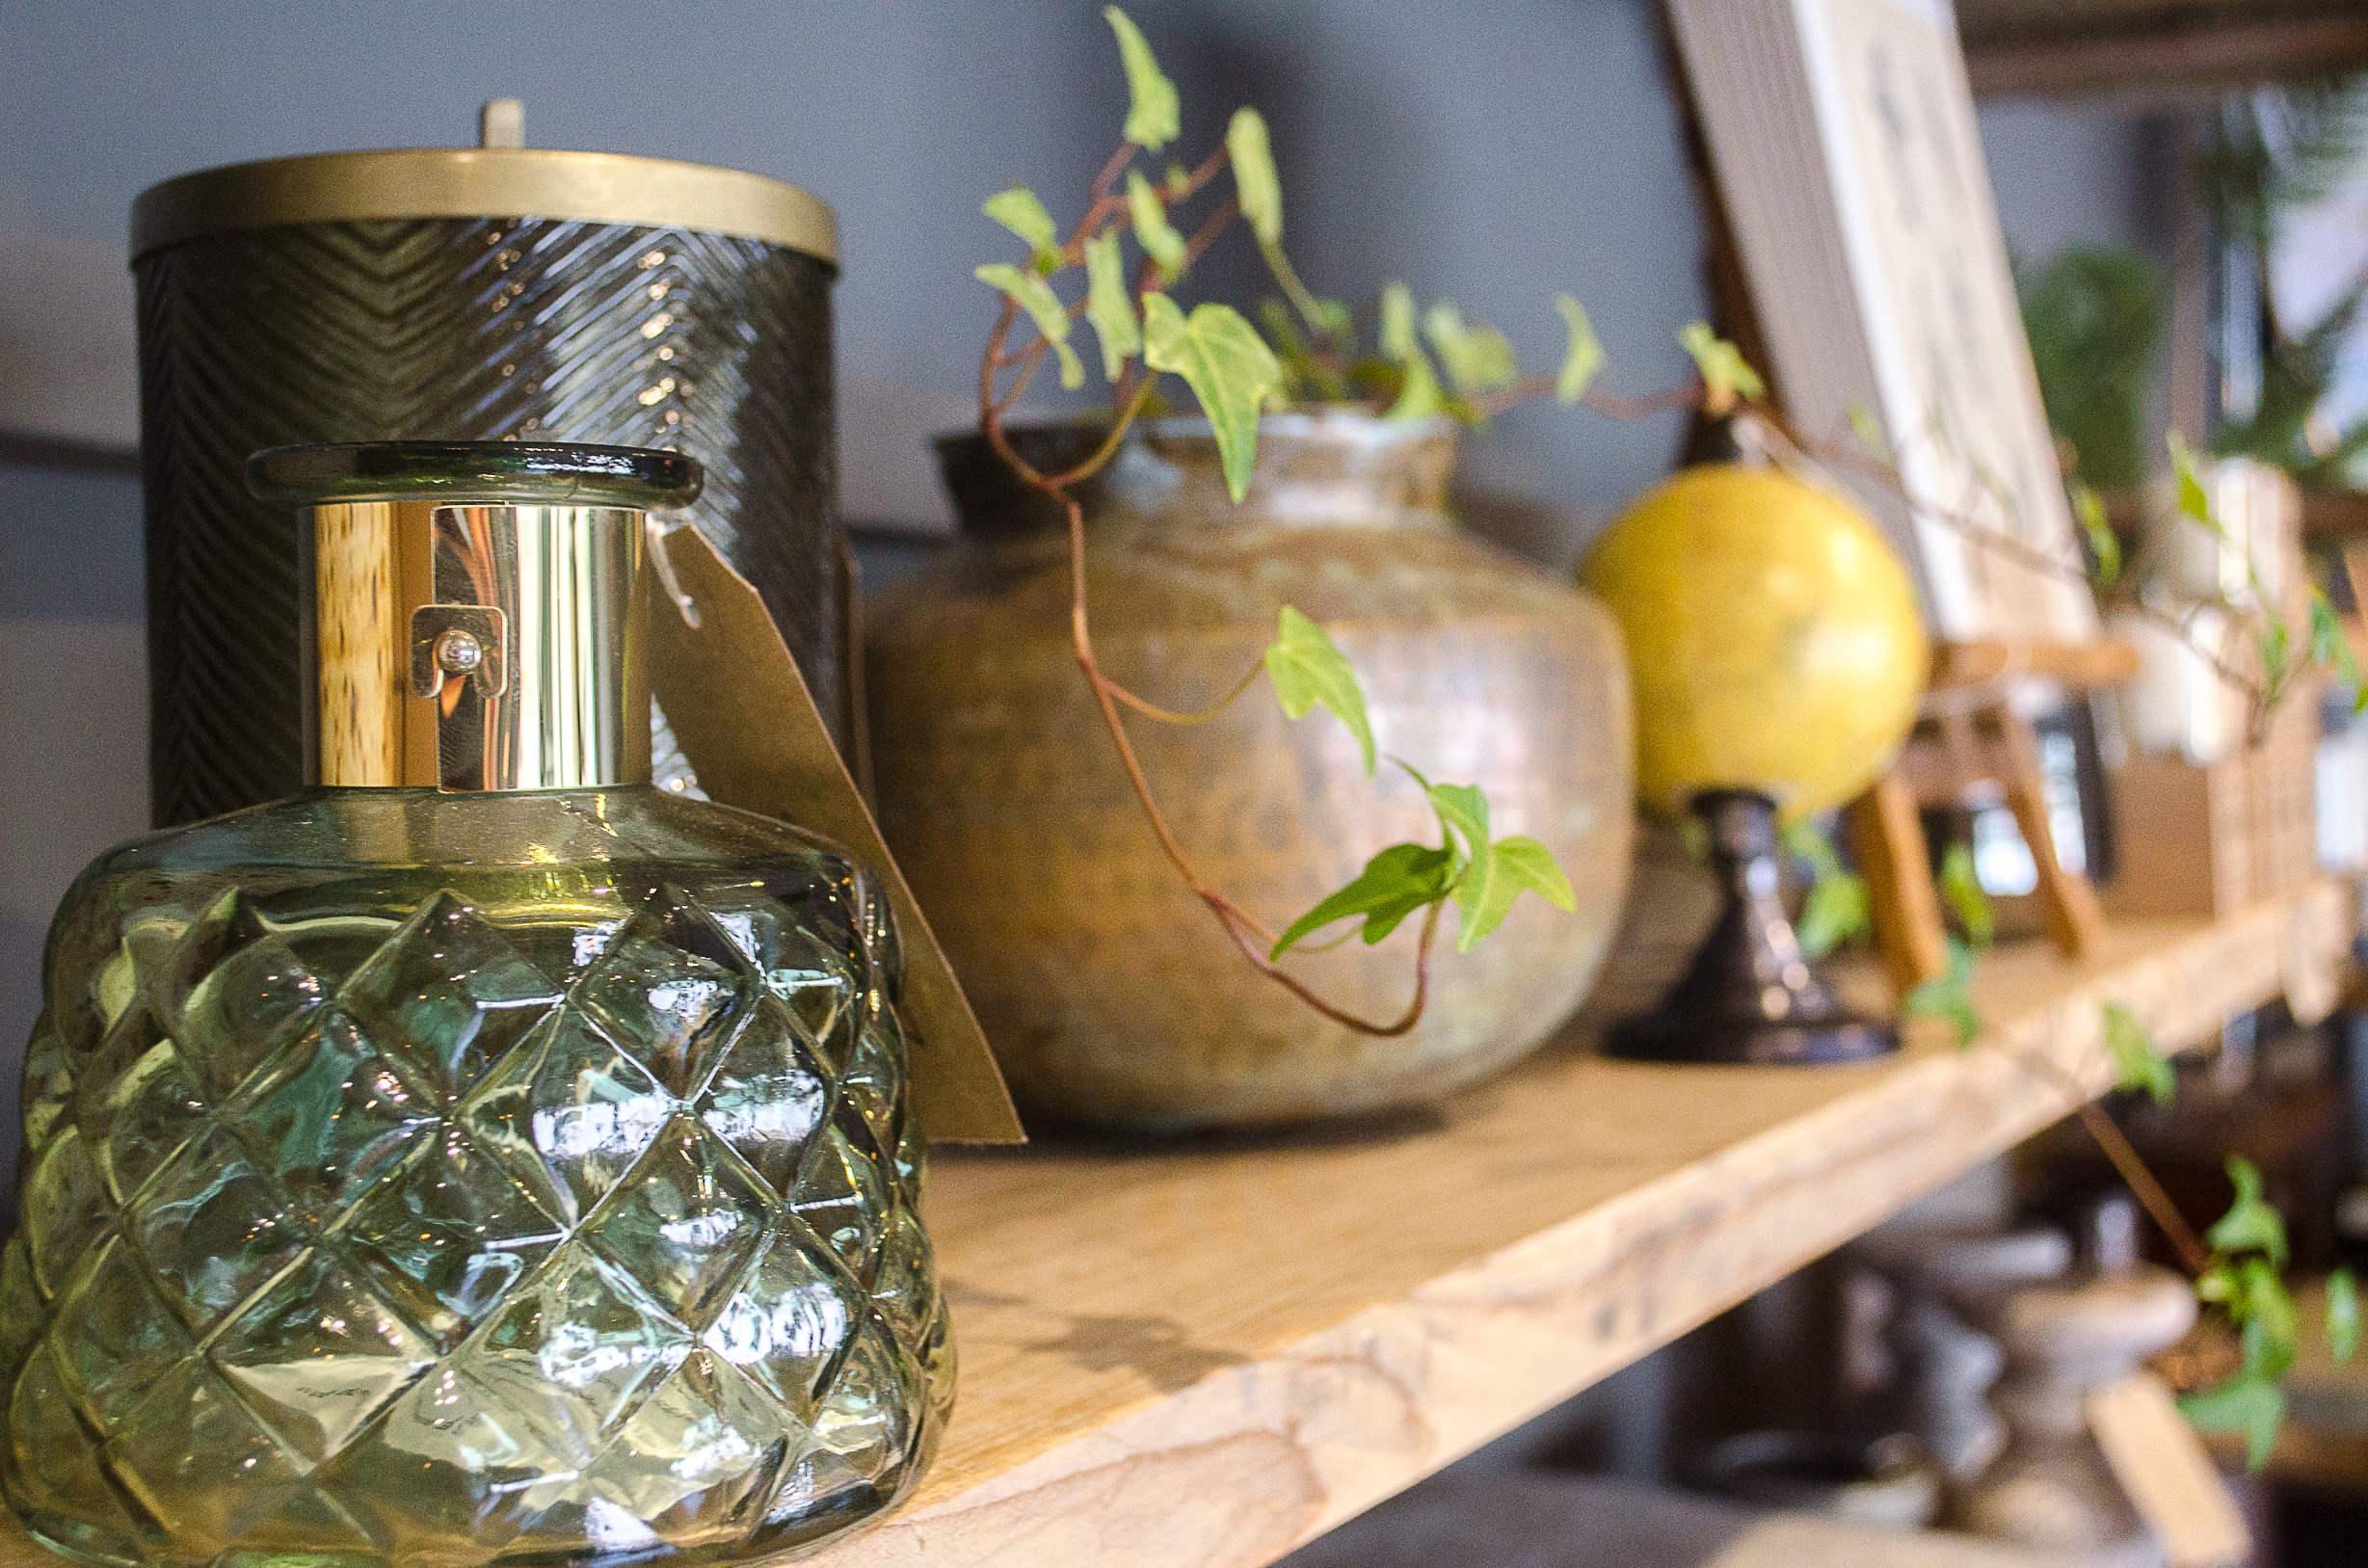 You can find lots of interesting and quirky accessories for your home